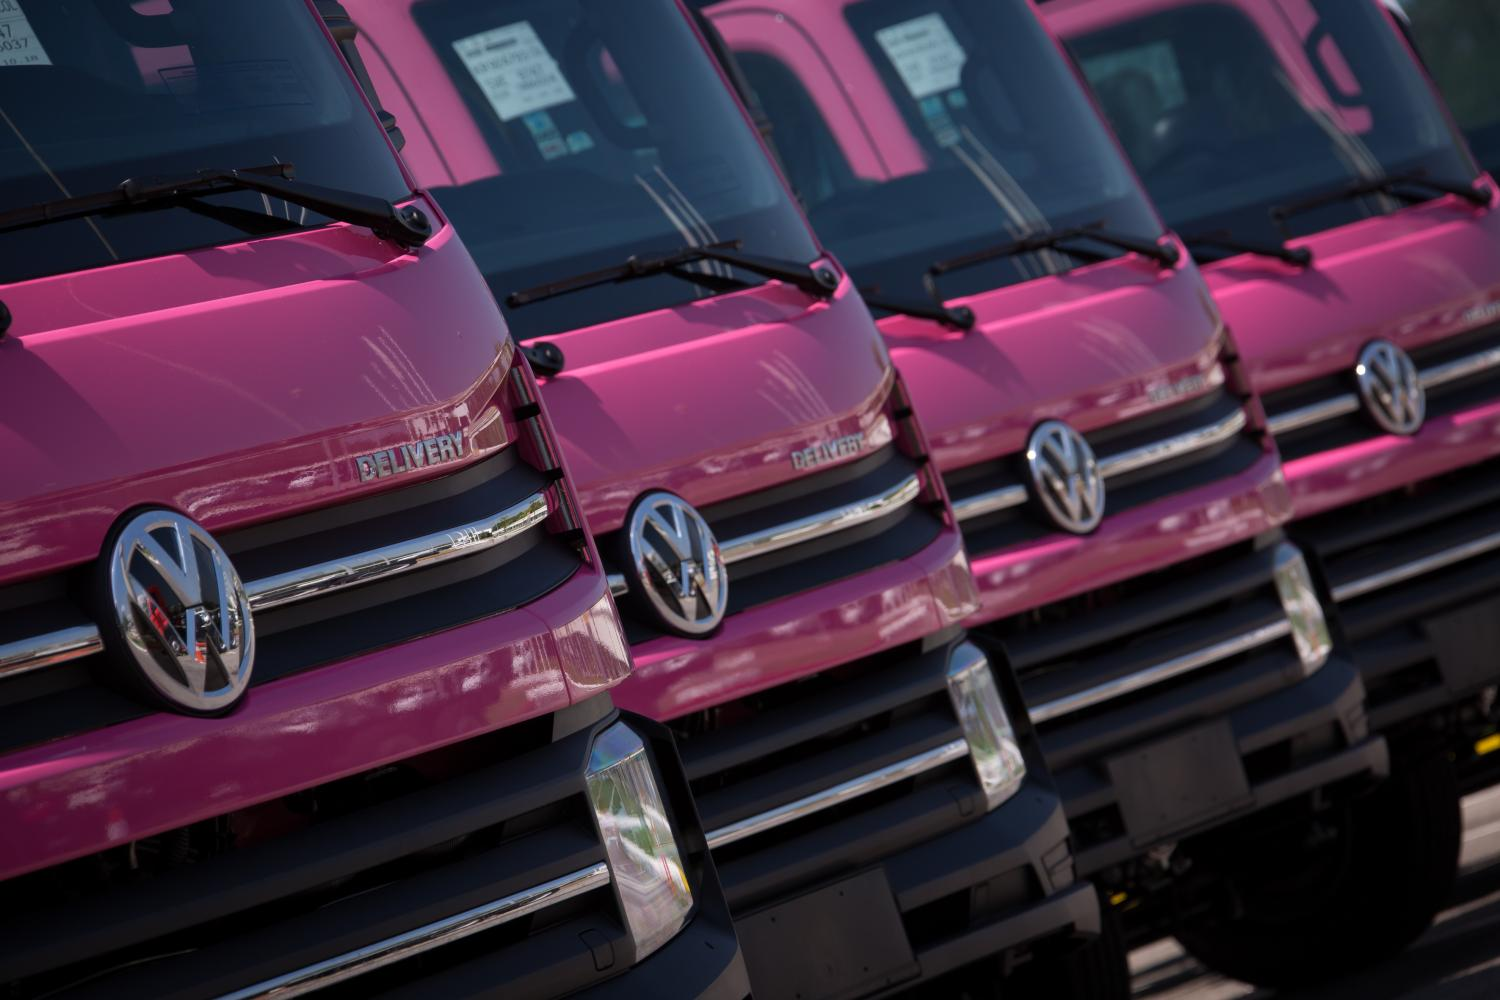 Vwtbpress Press Room Custom Paint Truck Photos In The Midst Of White Cabs That Dominate Production 40 Brand New Delivery 11180 Trucks With Pink Have Just Left Volkswagen Caminhes E